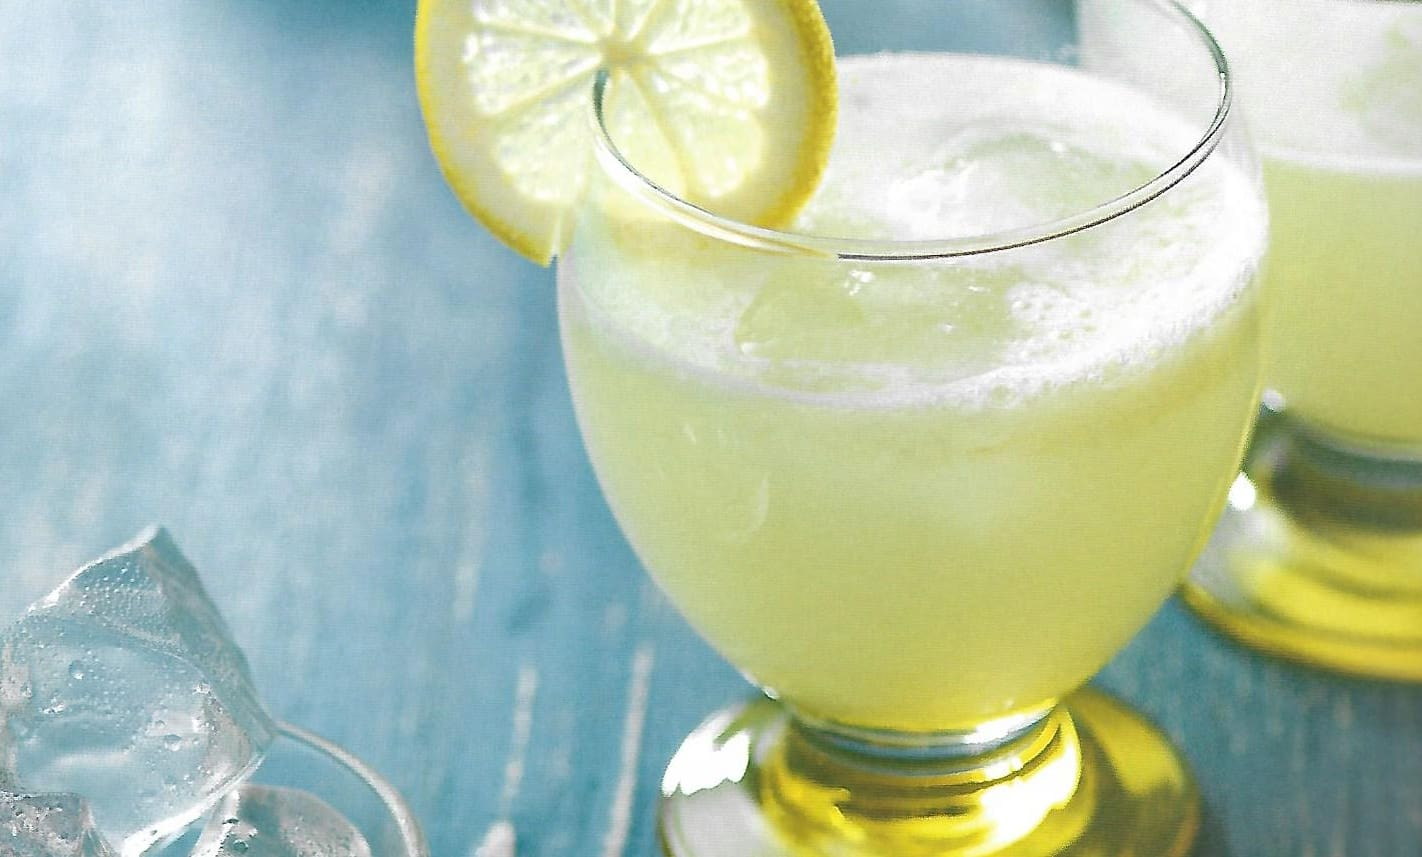 Limonade gemaakt in Thermomix